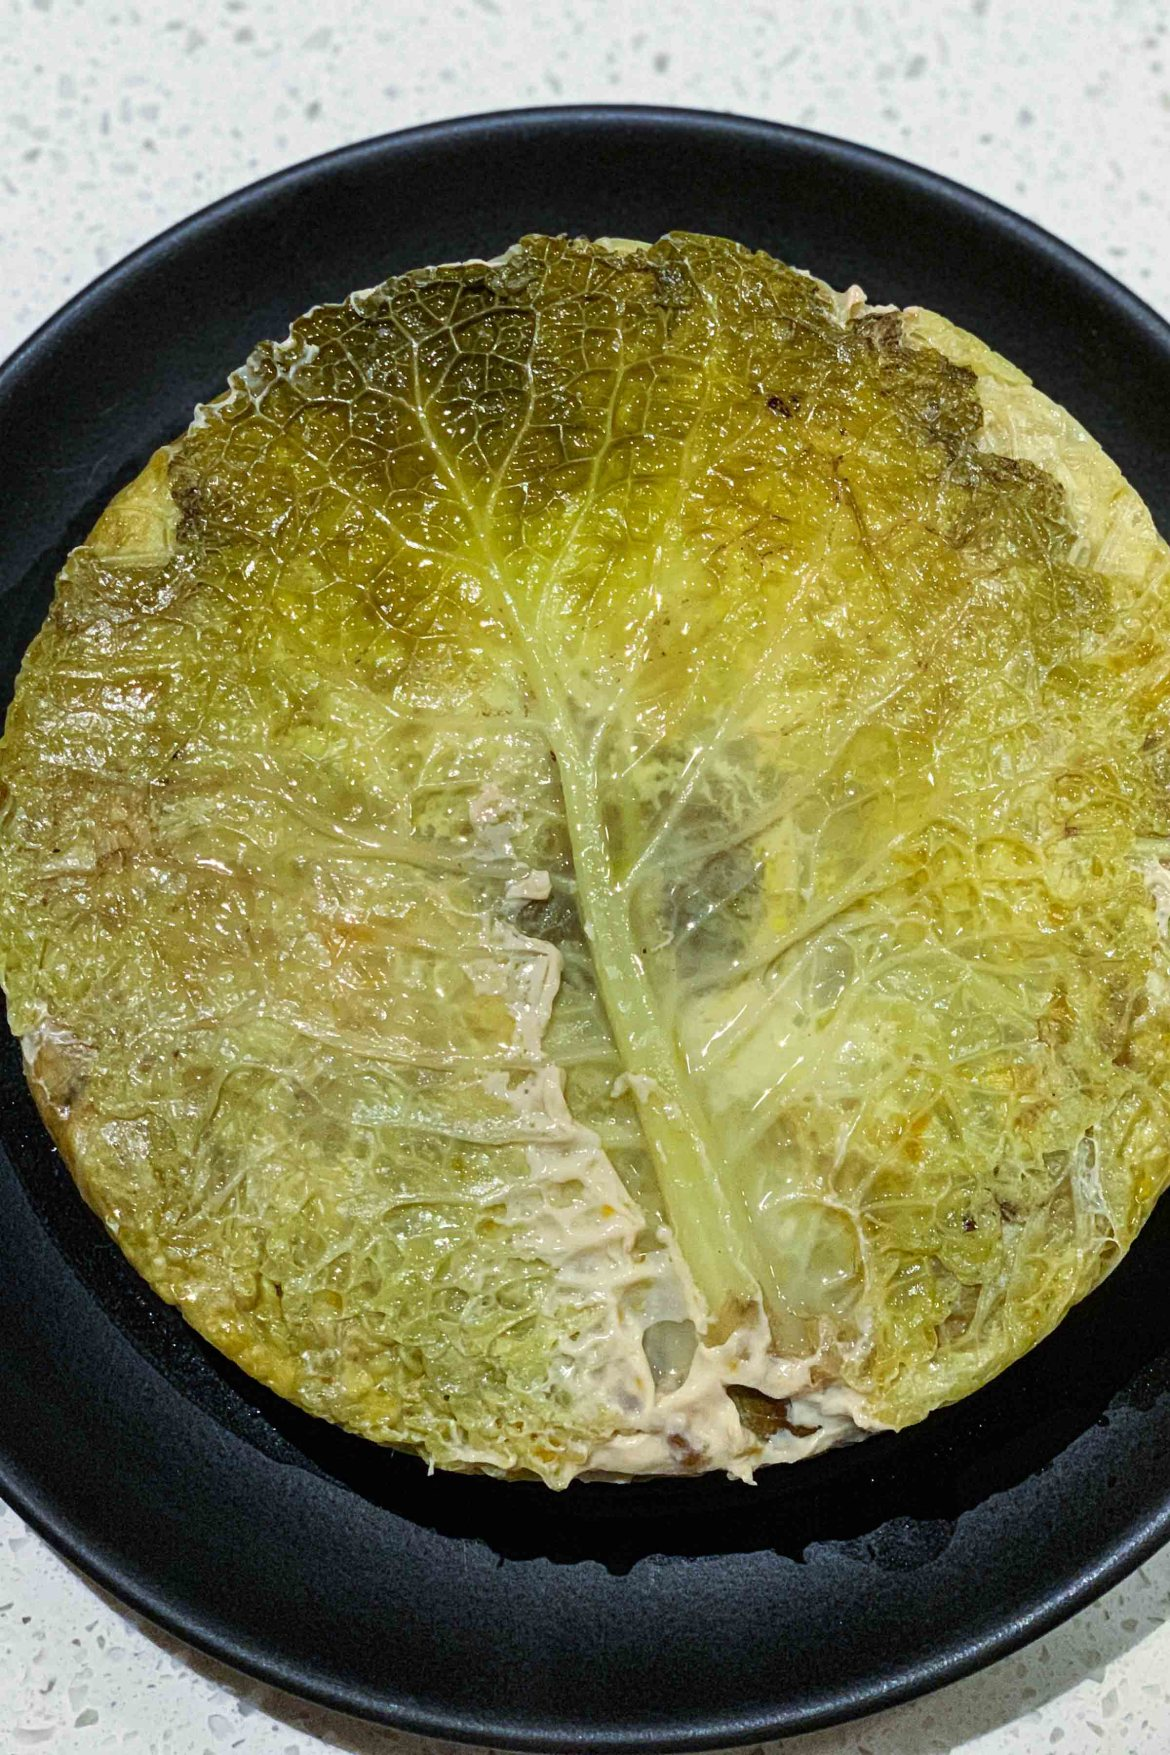 A Chou Farci is a simple French Stuffed Cabbage Recipe filled with layers of beef or pork, carrots, mirepoix, and rice or lentils. You can even make a vegetarian version. | thetasteedit.com #recipe #cabbage #French